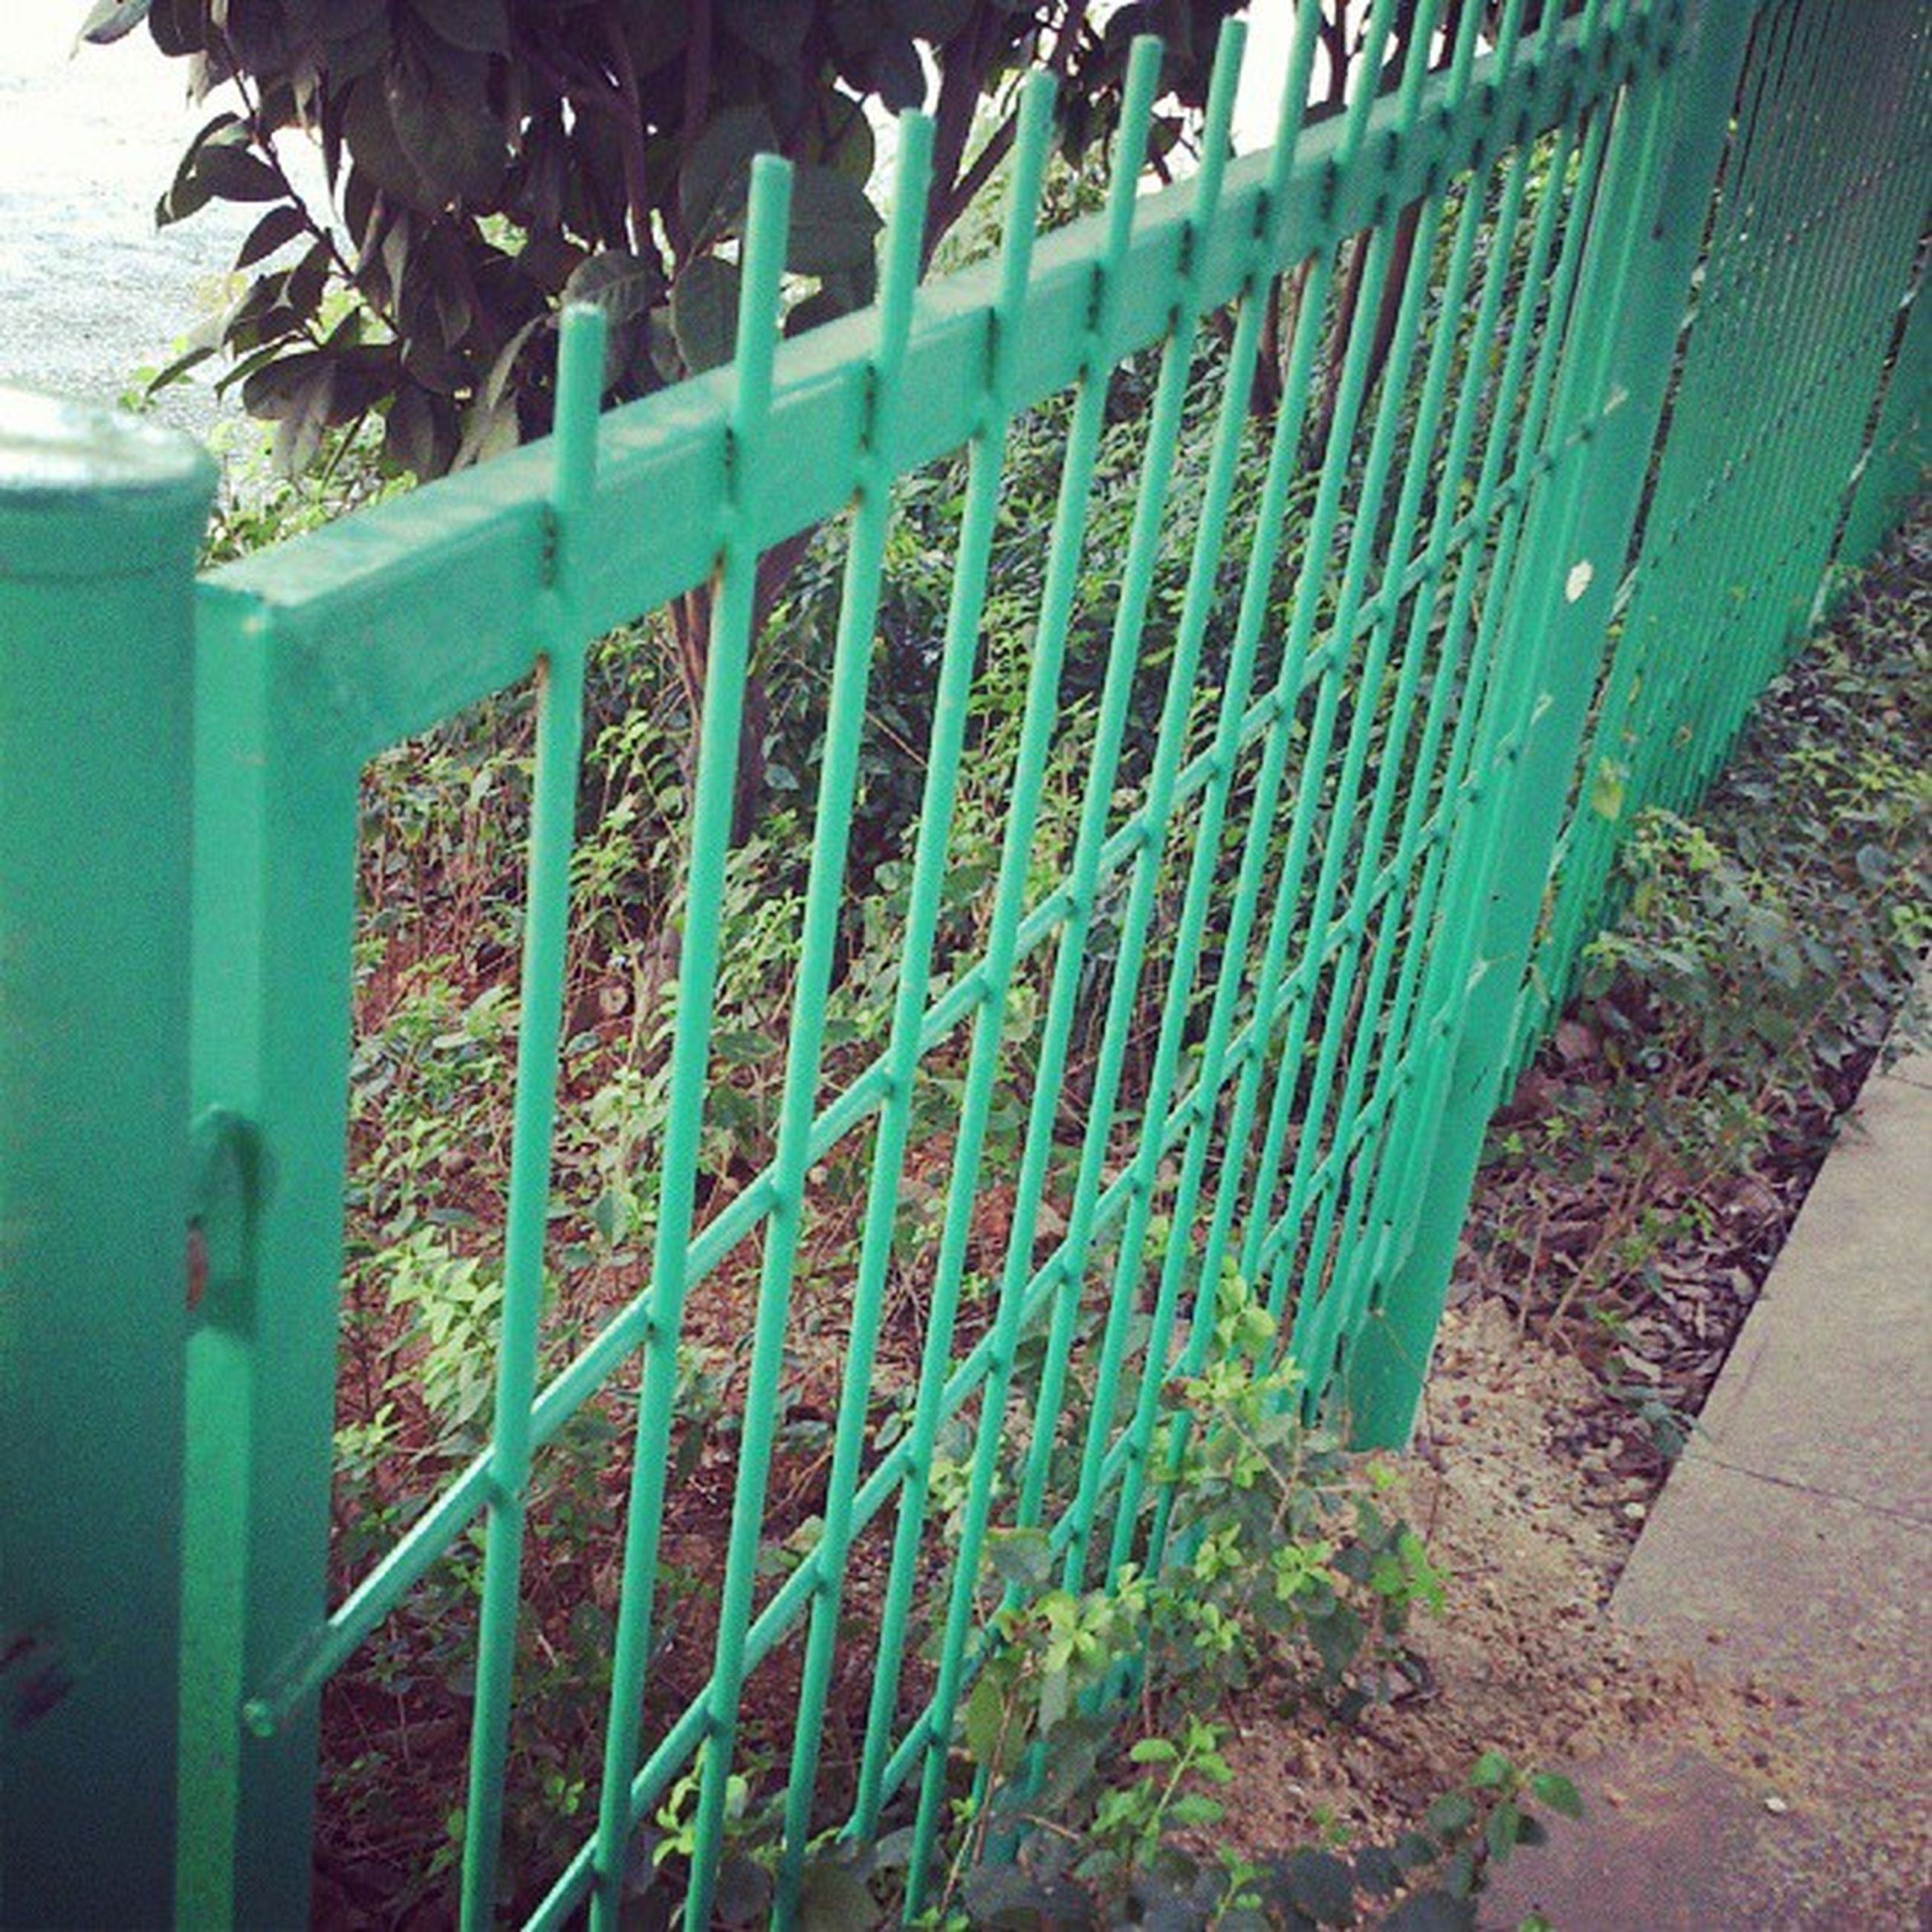 plant, metal, growth, fence, green color, close-up, protection, wall - building feature, leaf, day, railing, safety, metallic, sunlight, no people, outdoors, built structure, front or back yard, nature, potted plant